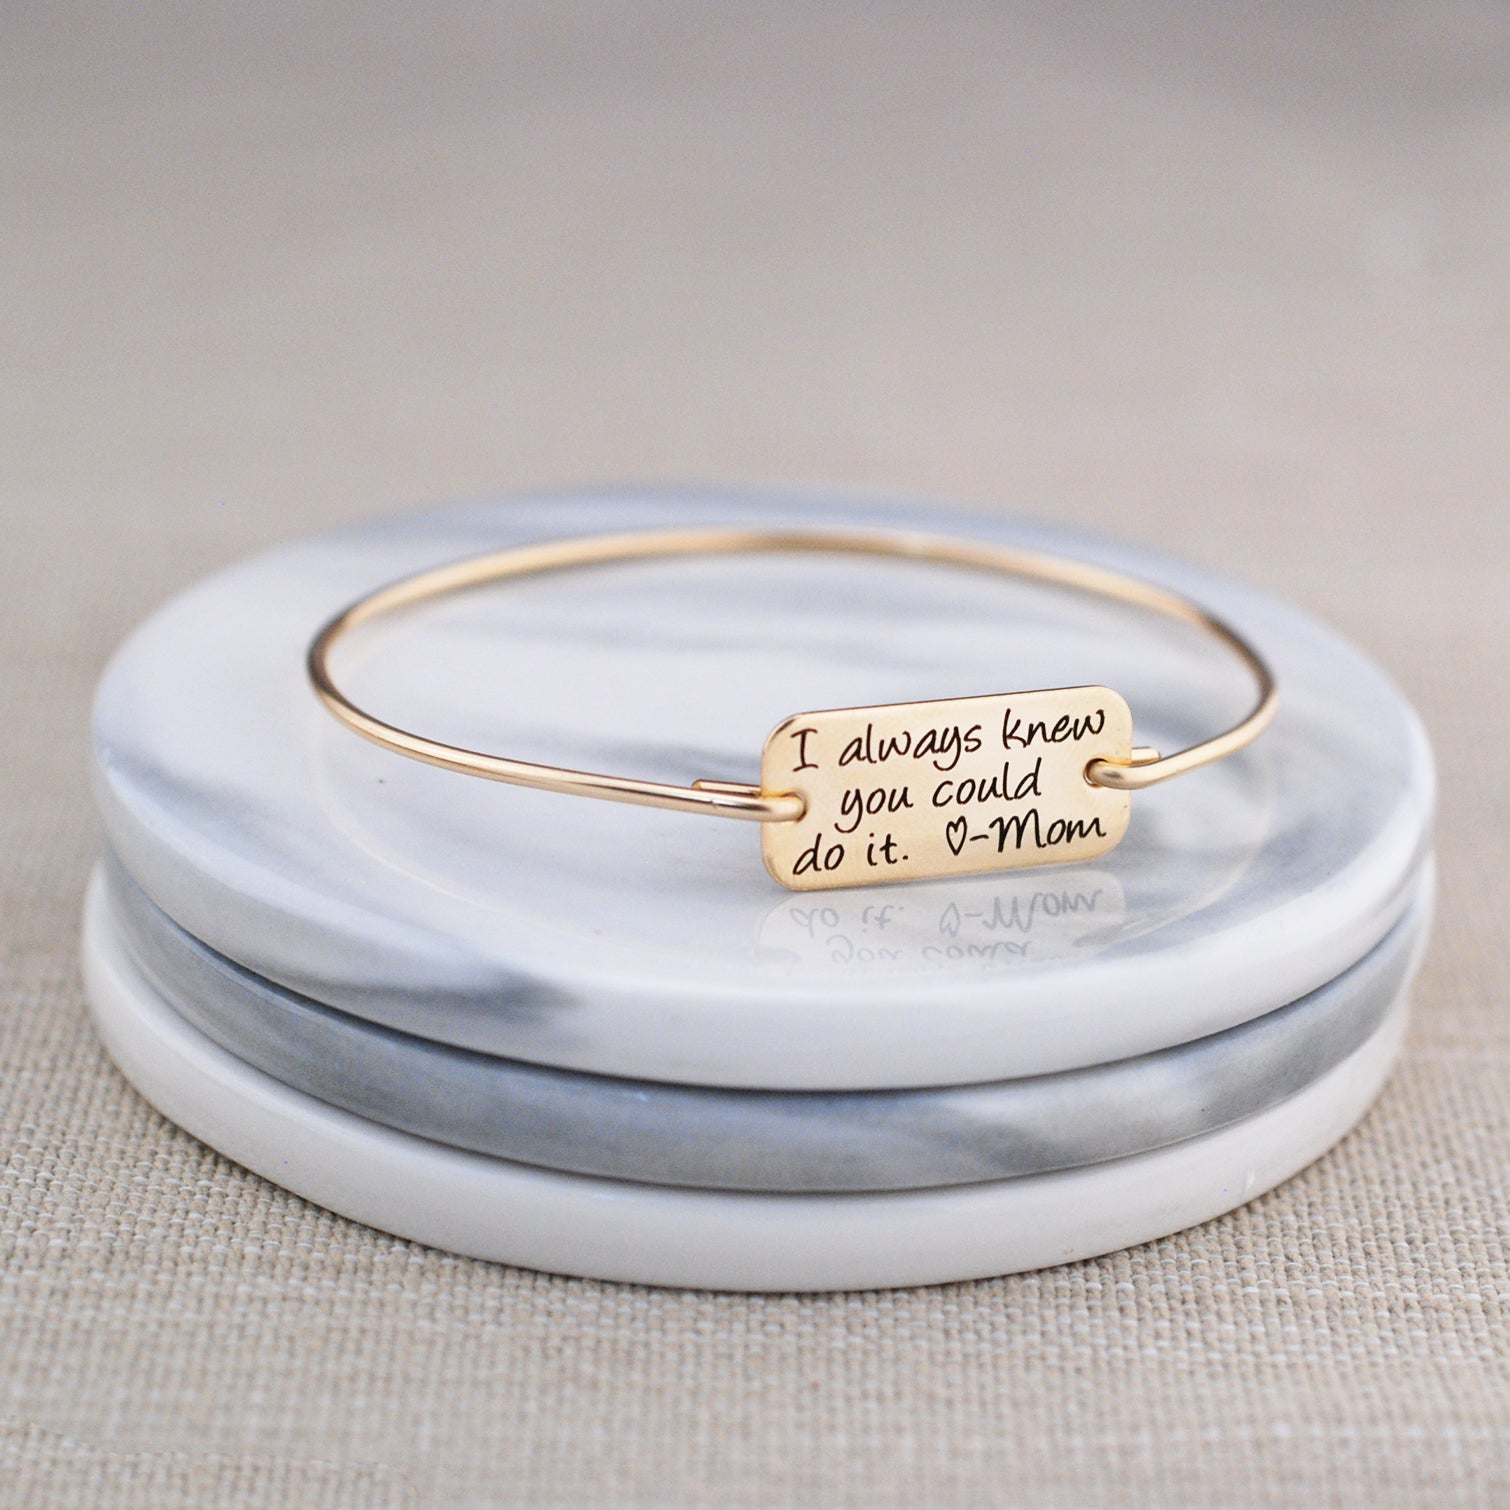 Gold personalized bracelet engraved 'I always knew you could do it. - Mom